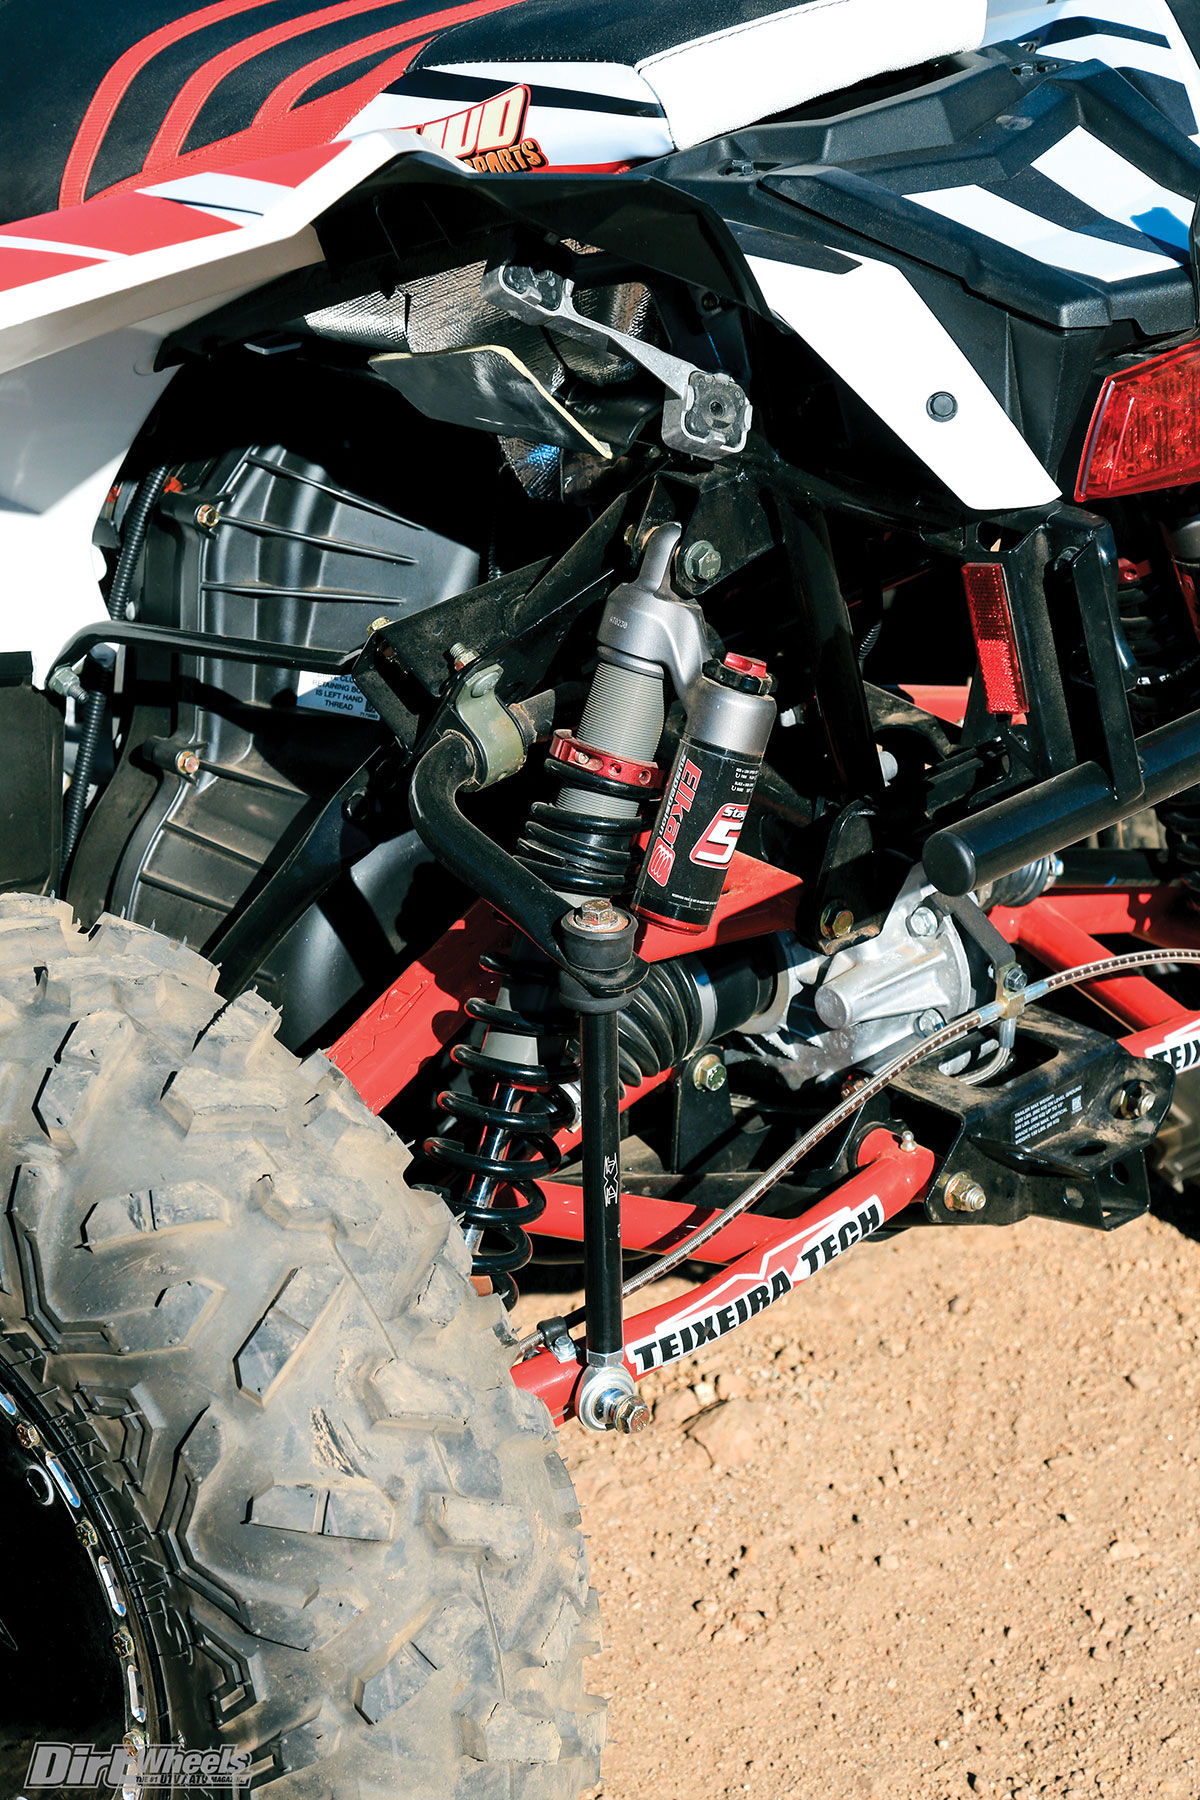 Elka fully adjustable Stage 5 shocks are mounted to all four corners, and they work well in the rough.